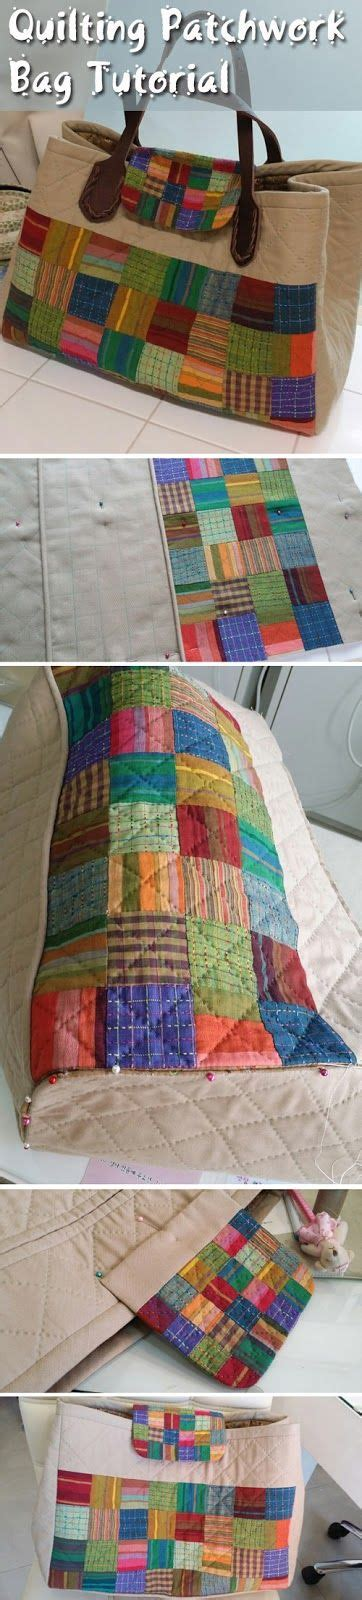 quilting patchwork bag tutorial diy step by step